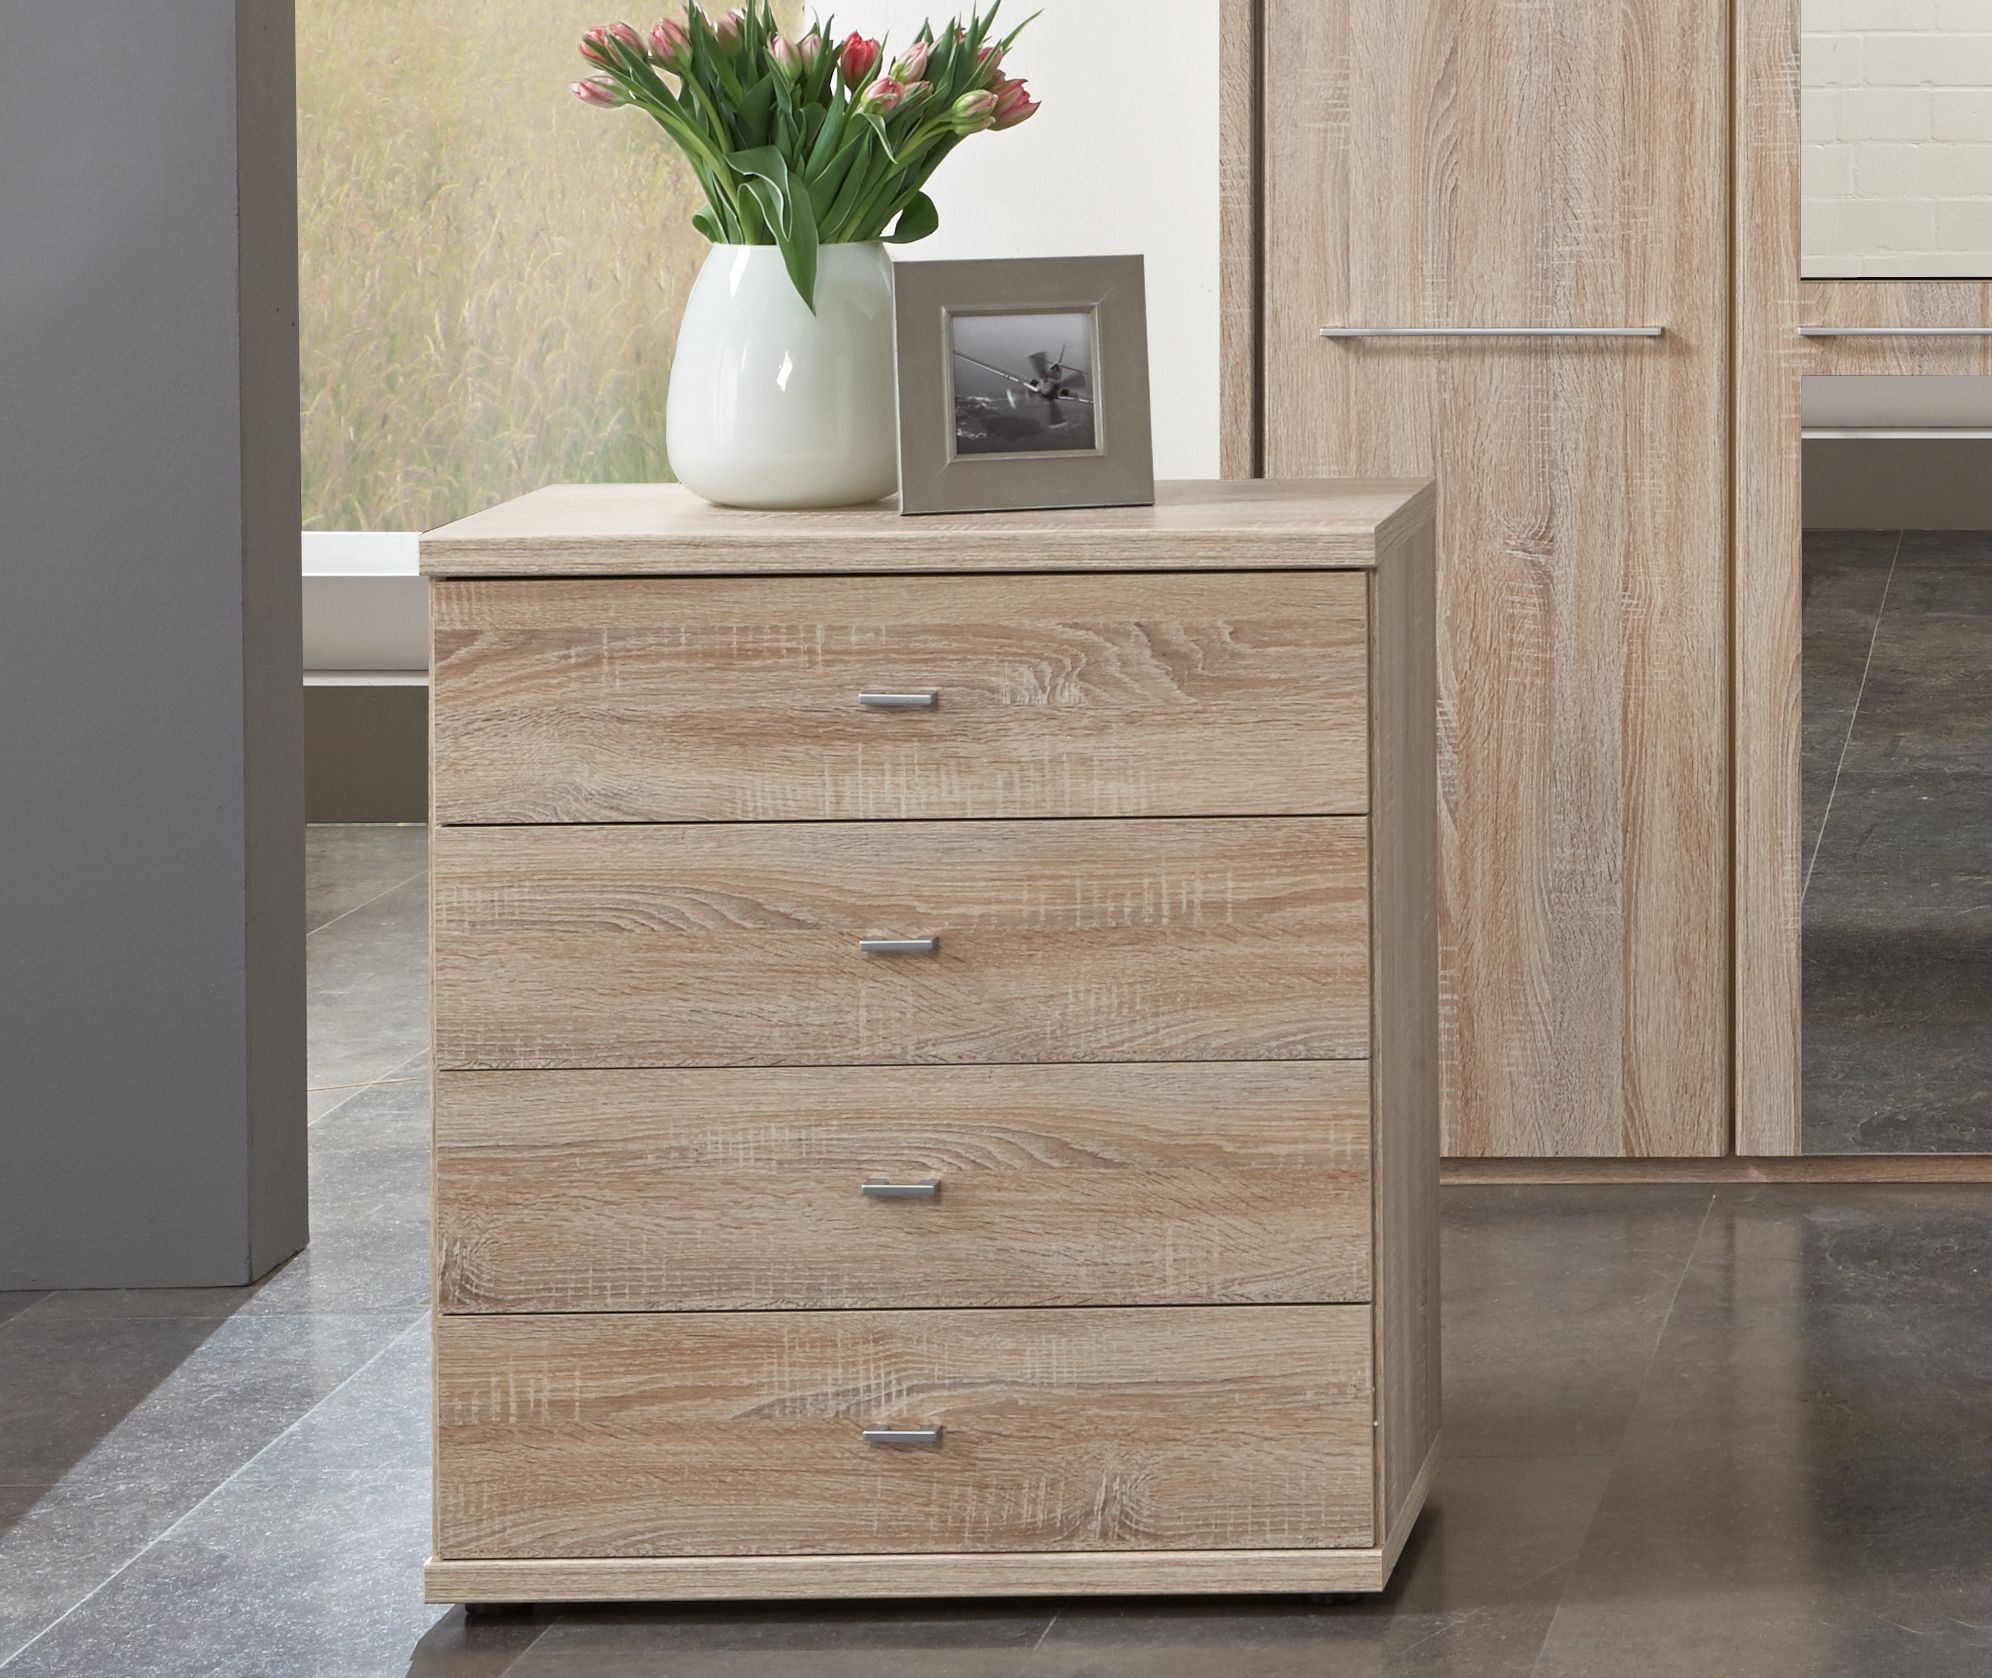 Wiemann Dakar-2 2 Door 4 Drawer Combi Chest in Rustic Oak